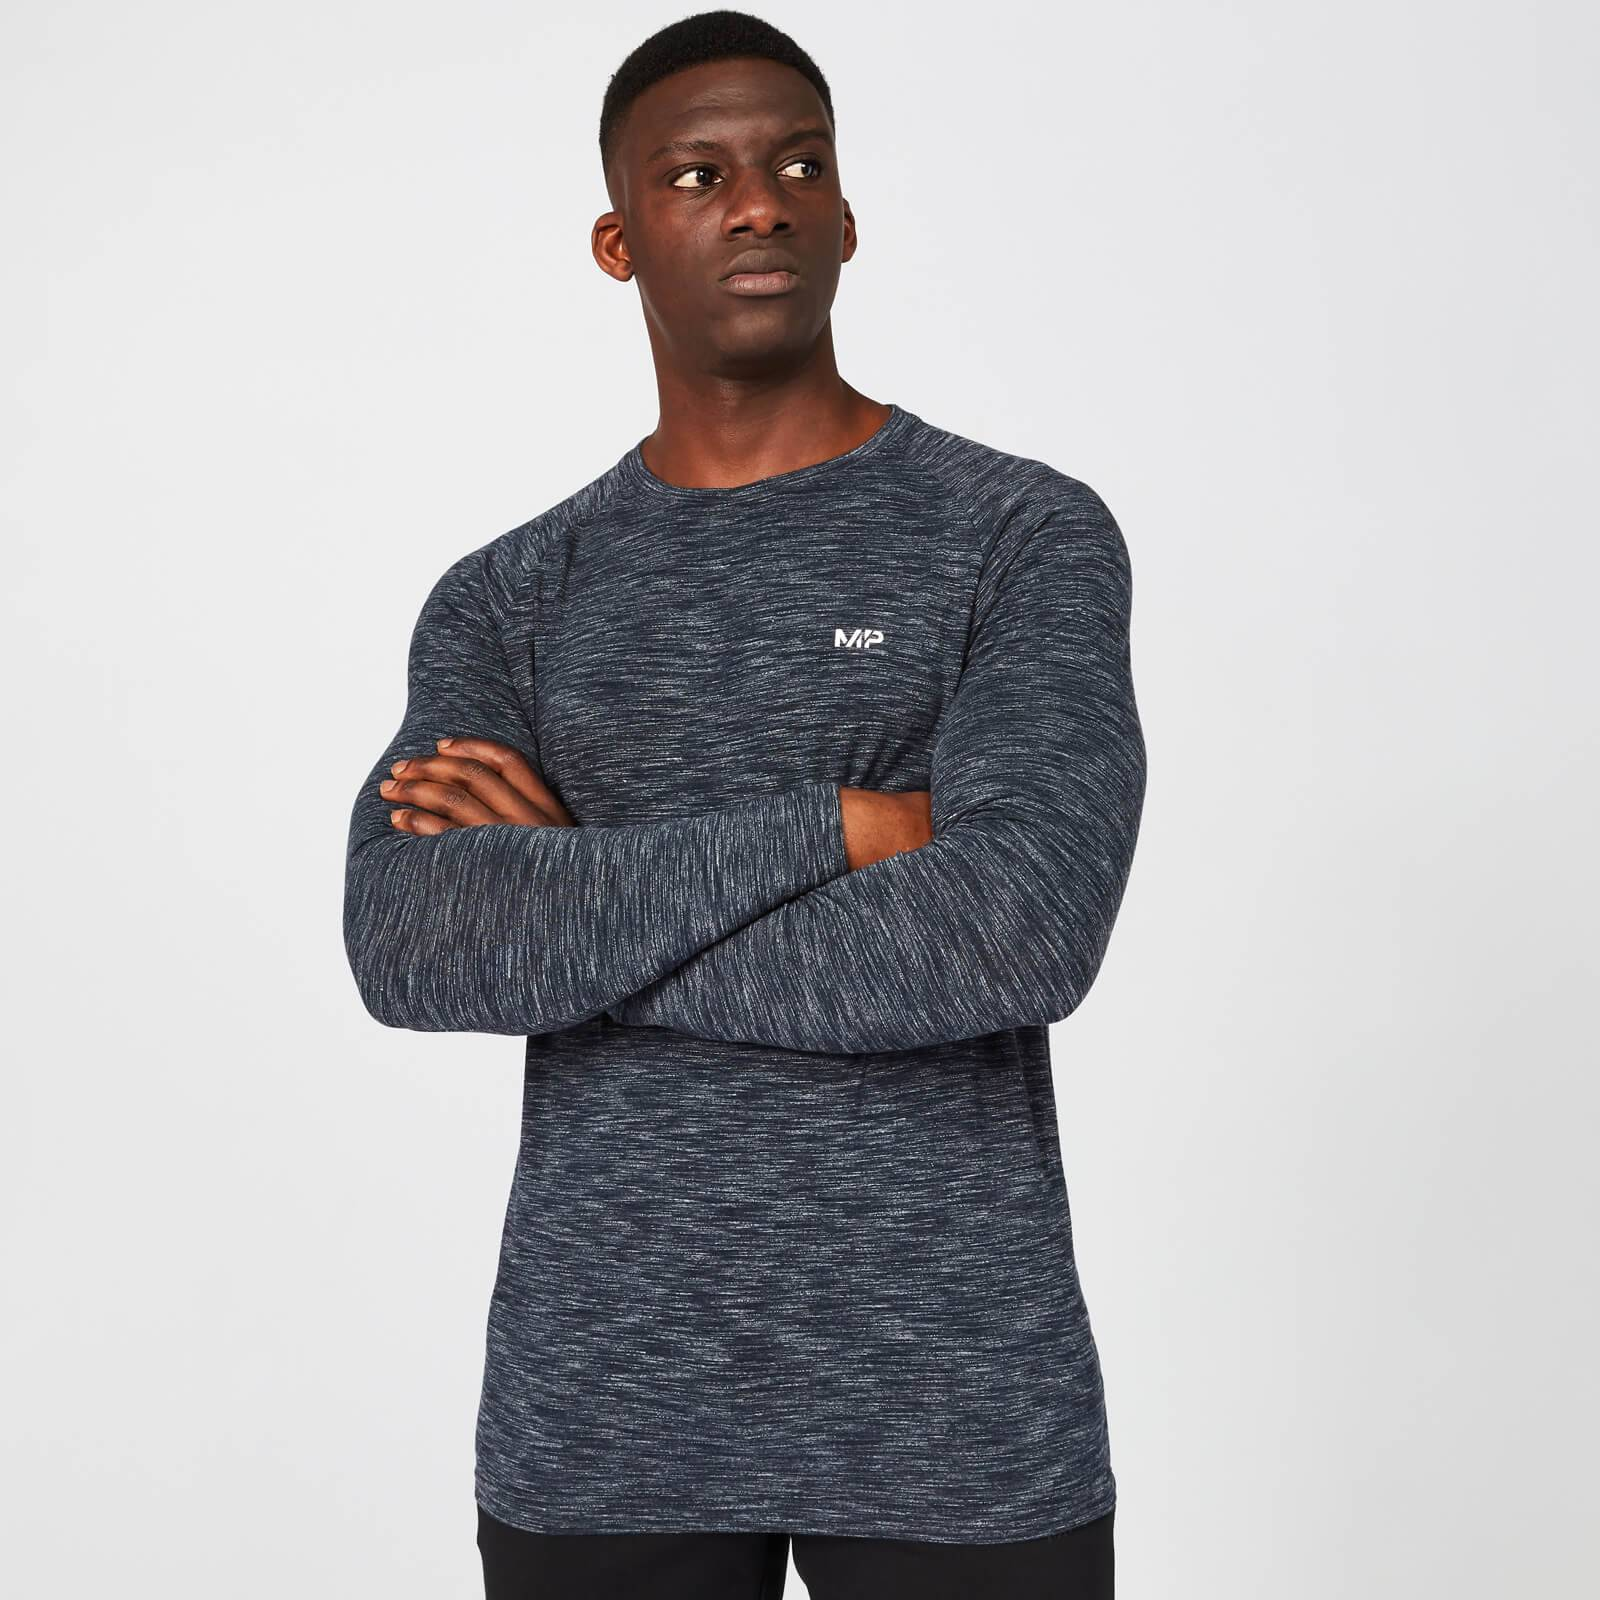 Mp Men's Performance Long Sleeve Top - Navy Marl - L